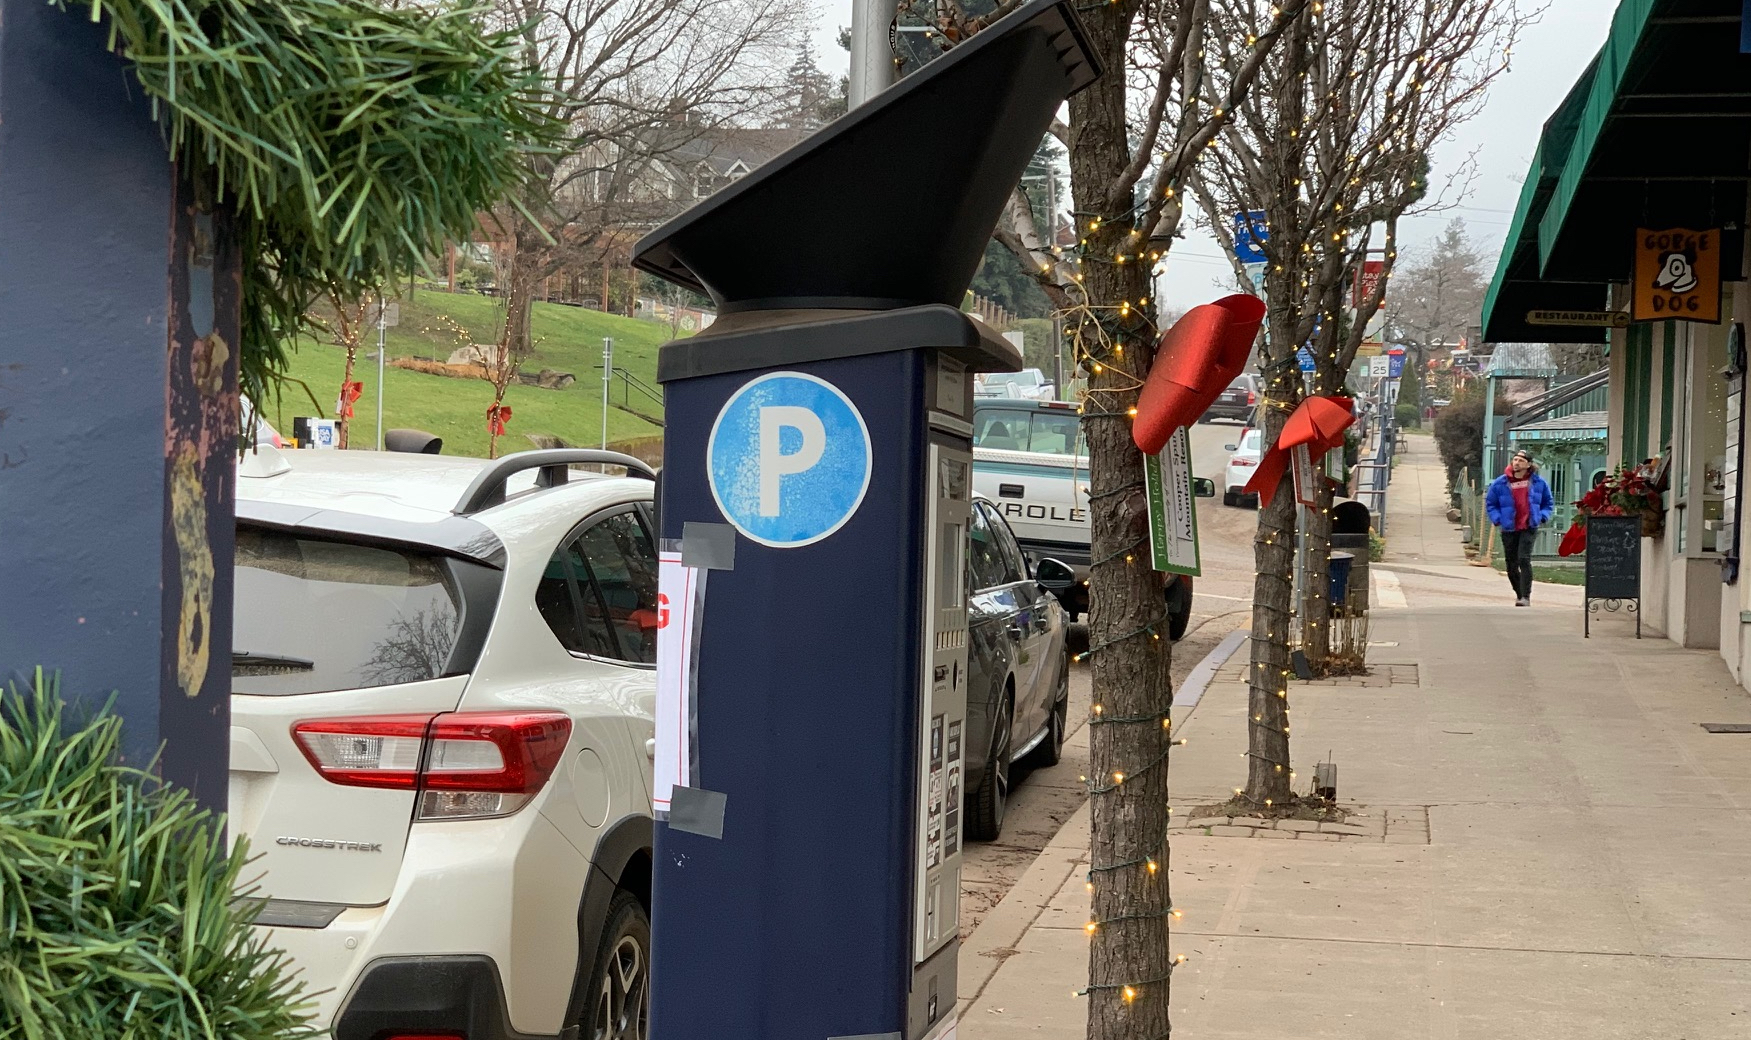 Free holiday downtown parking hours